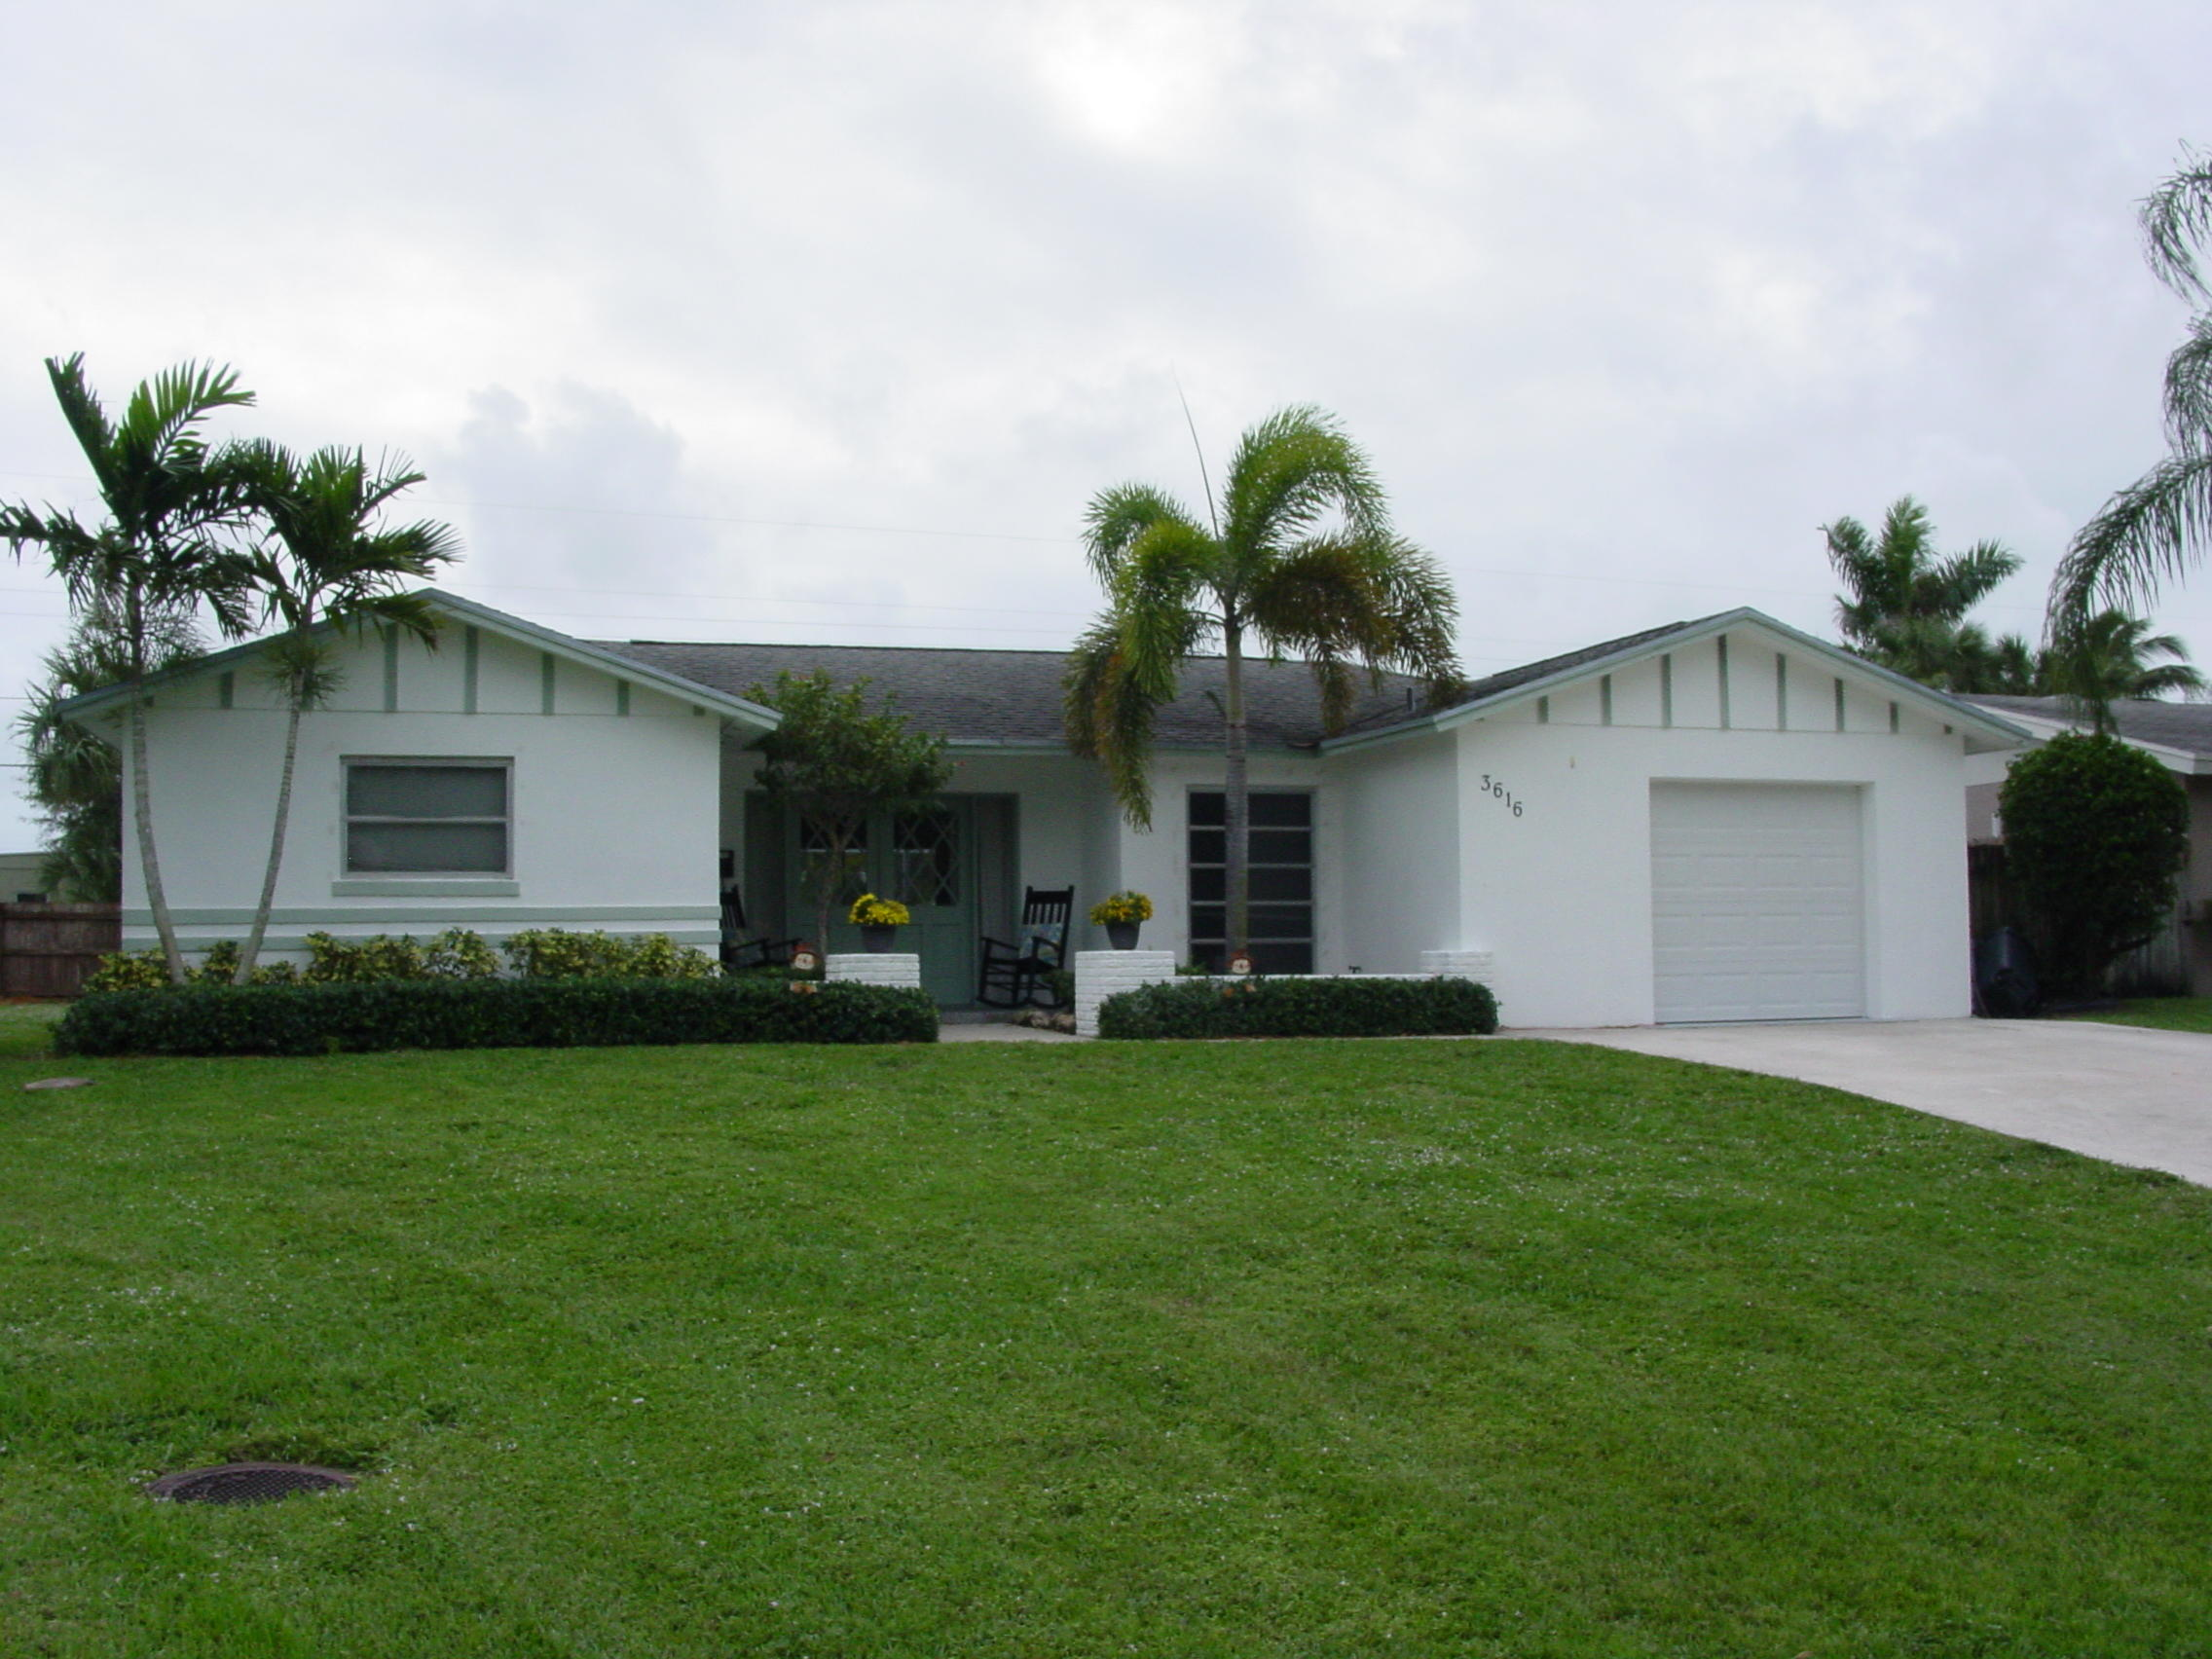 Photo of 3616 Daisy Avenue, Palm Beach Gardens, FL 33410